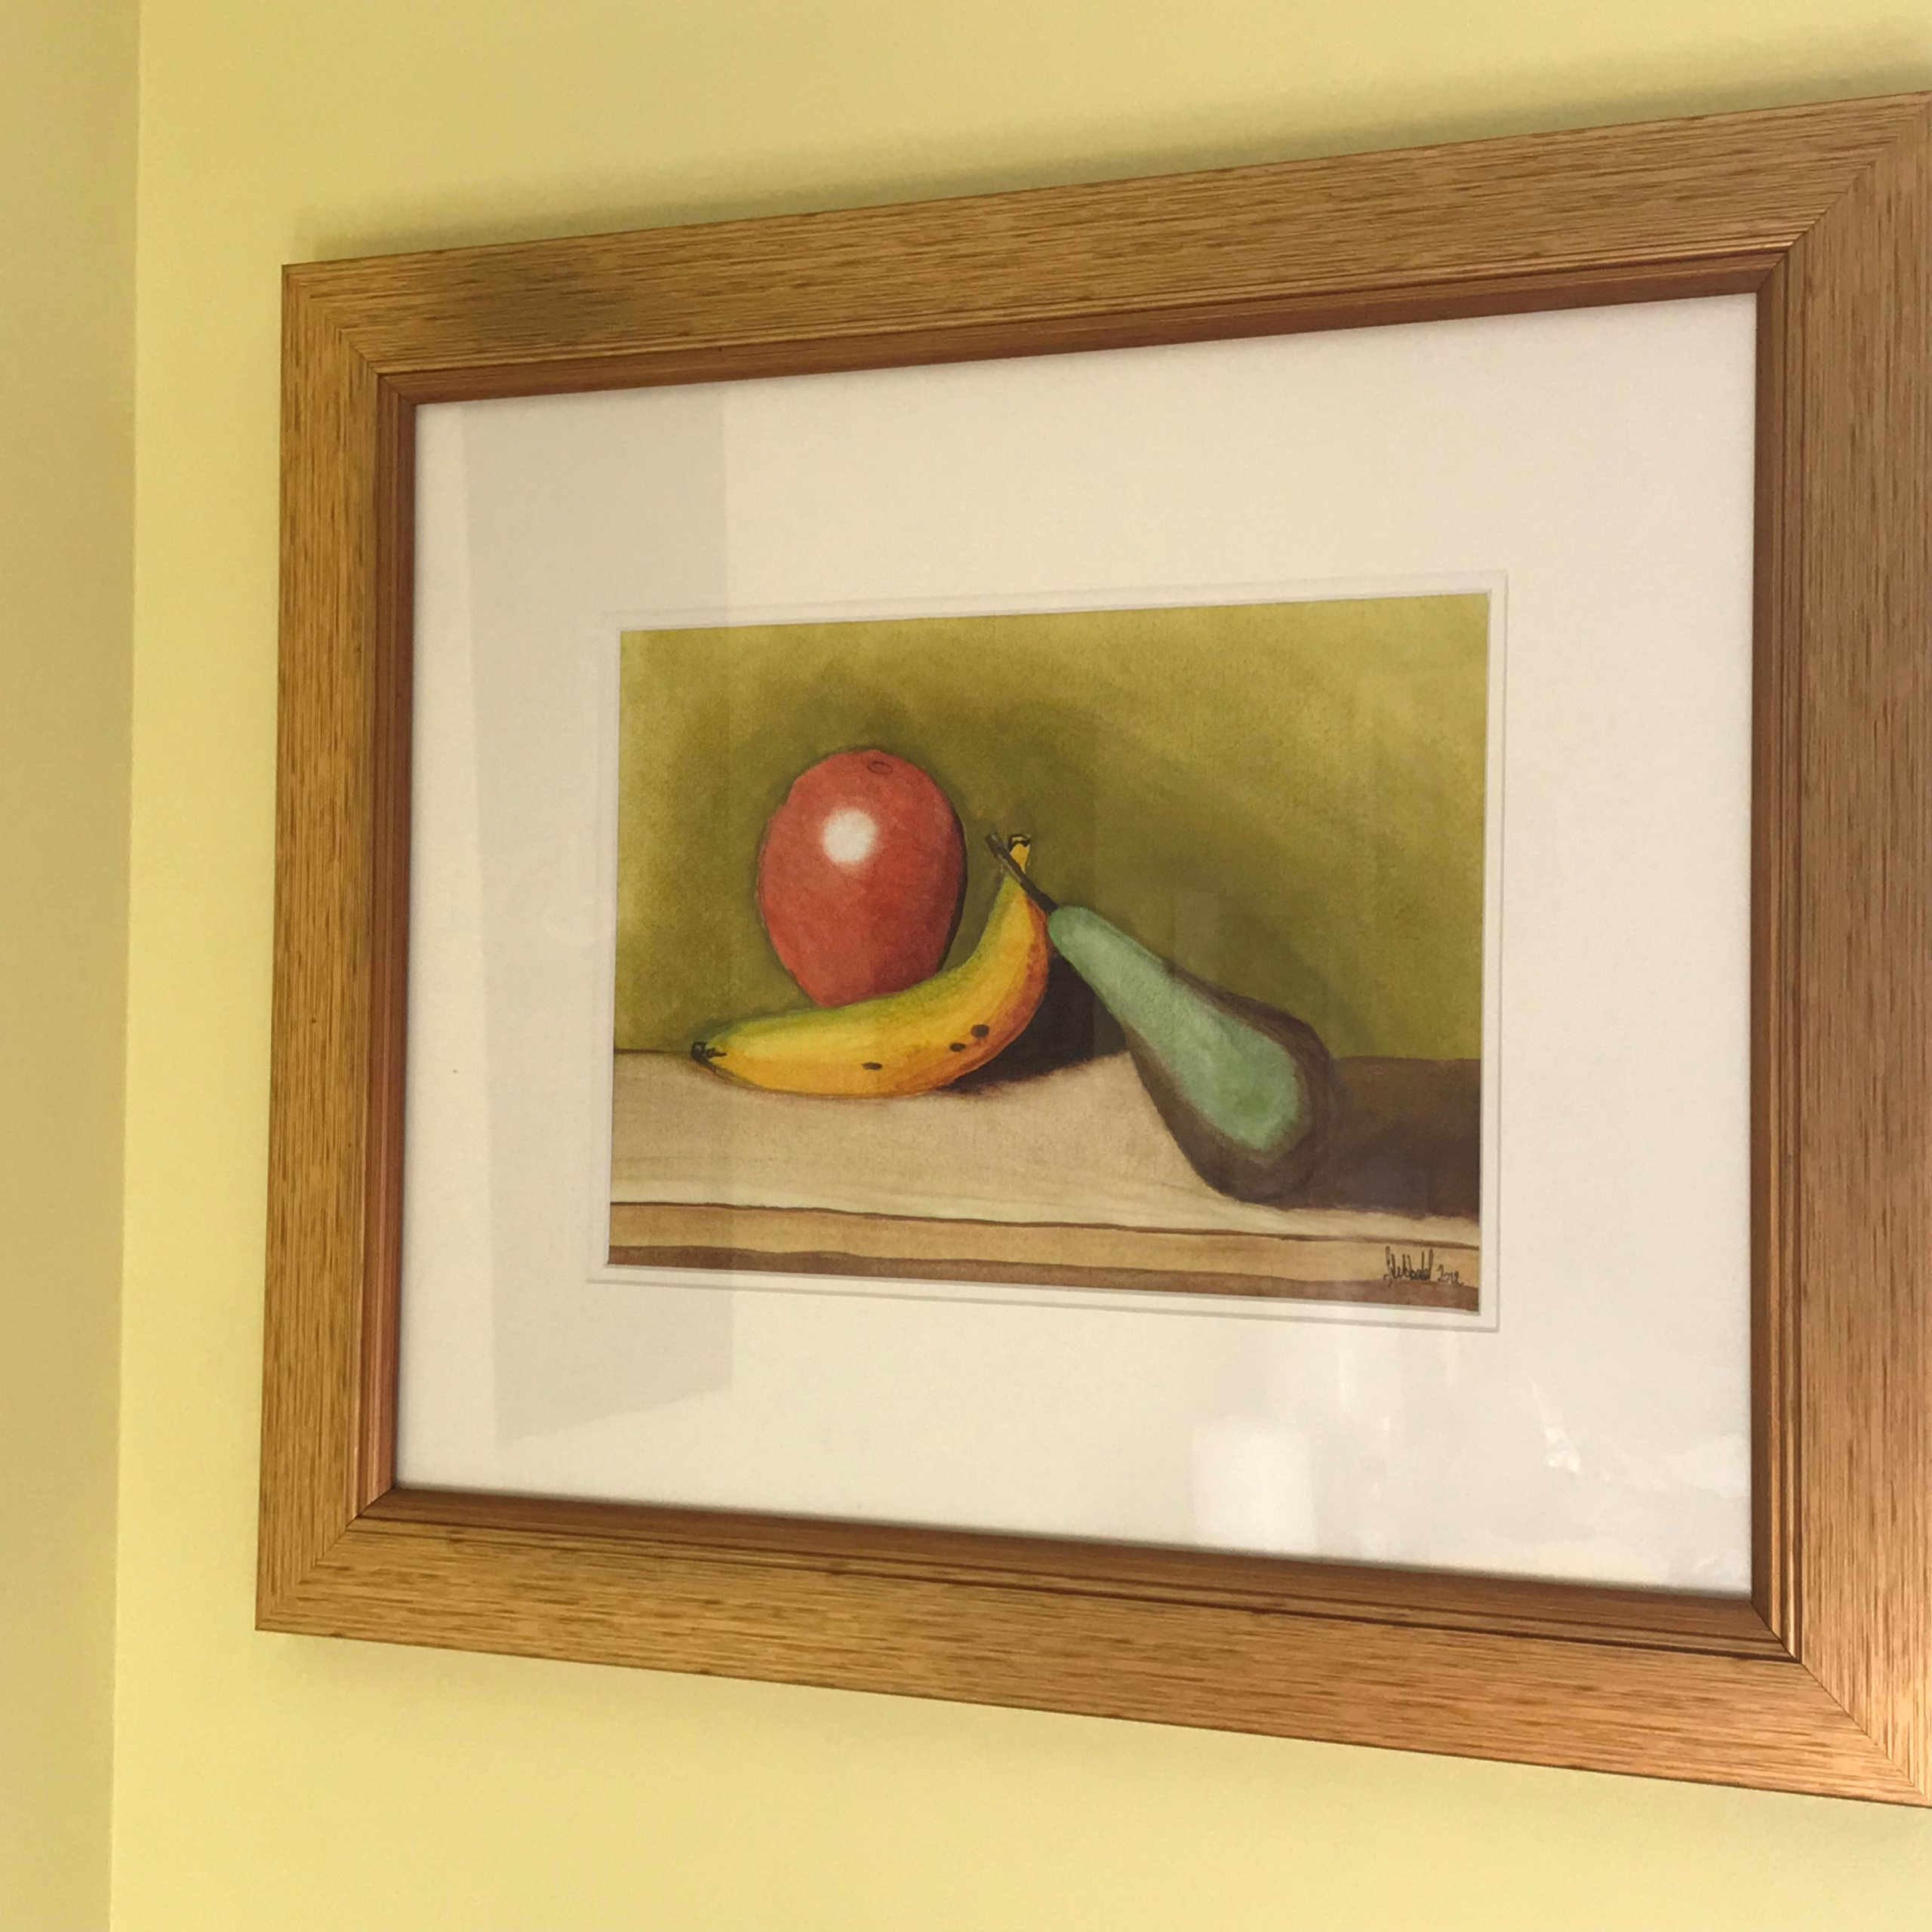 """5 Fruits per day, almost!"" a new painting by Scott Sibbald"